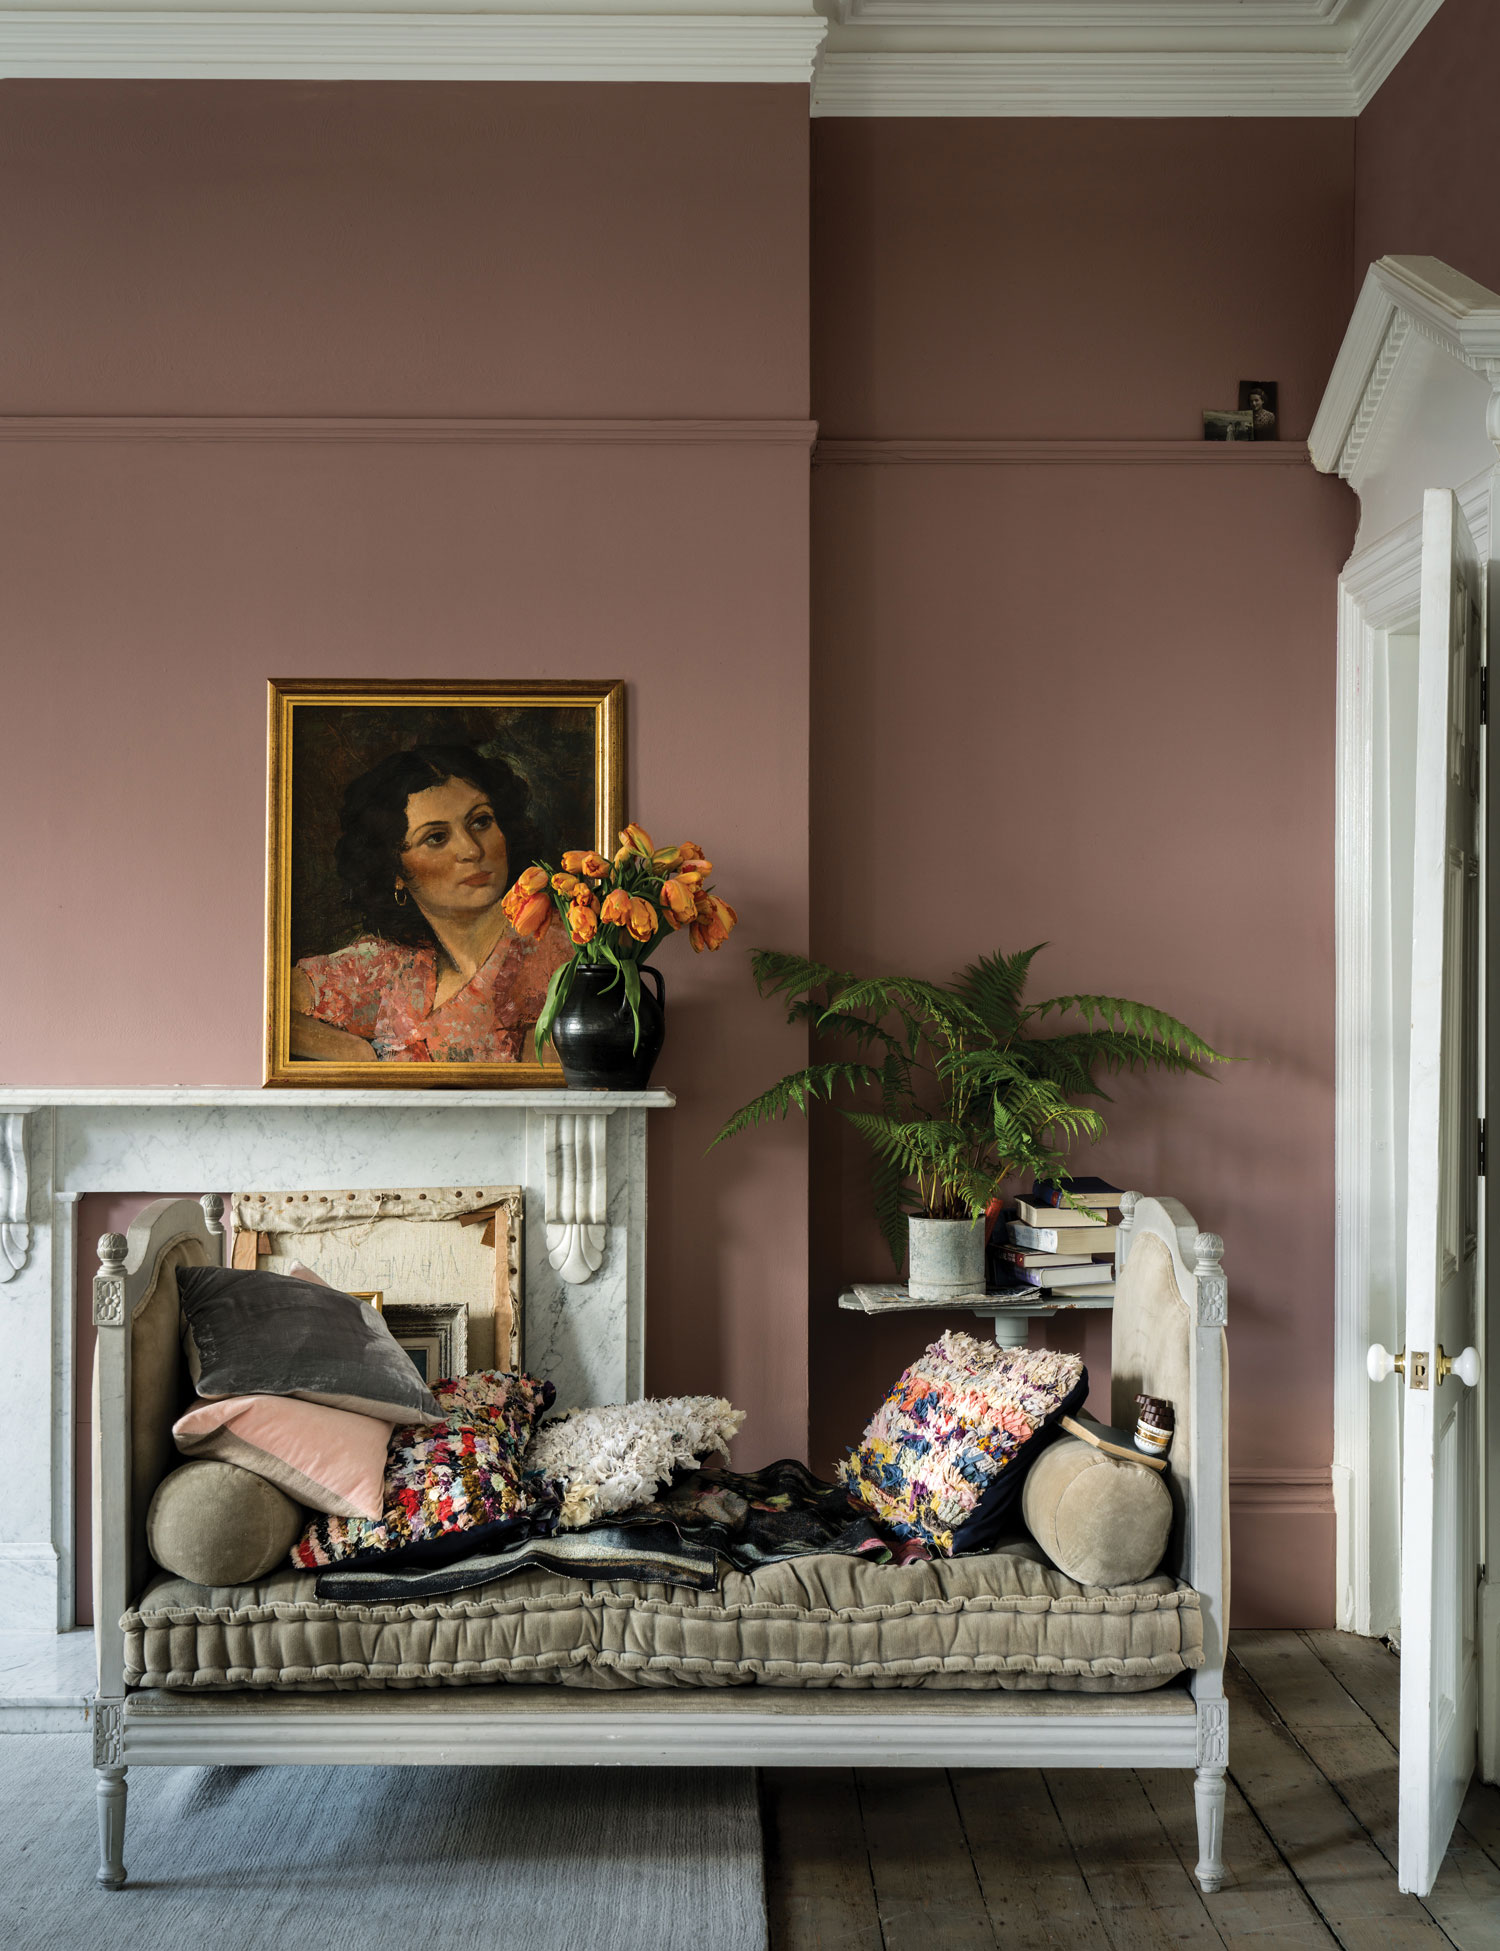 These New Farrow&Ball Colours Will Make You Forget White - AUTHENTIC INTERIOR DESIGN BLOG www.AuthenticInterior.com